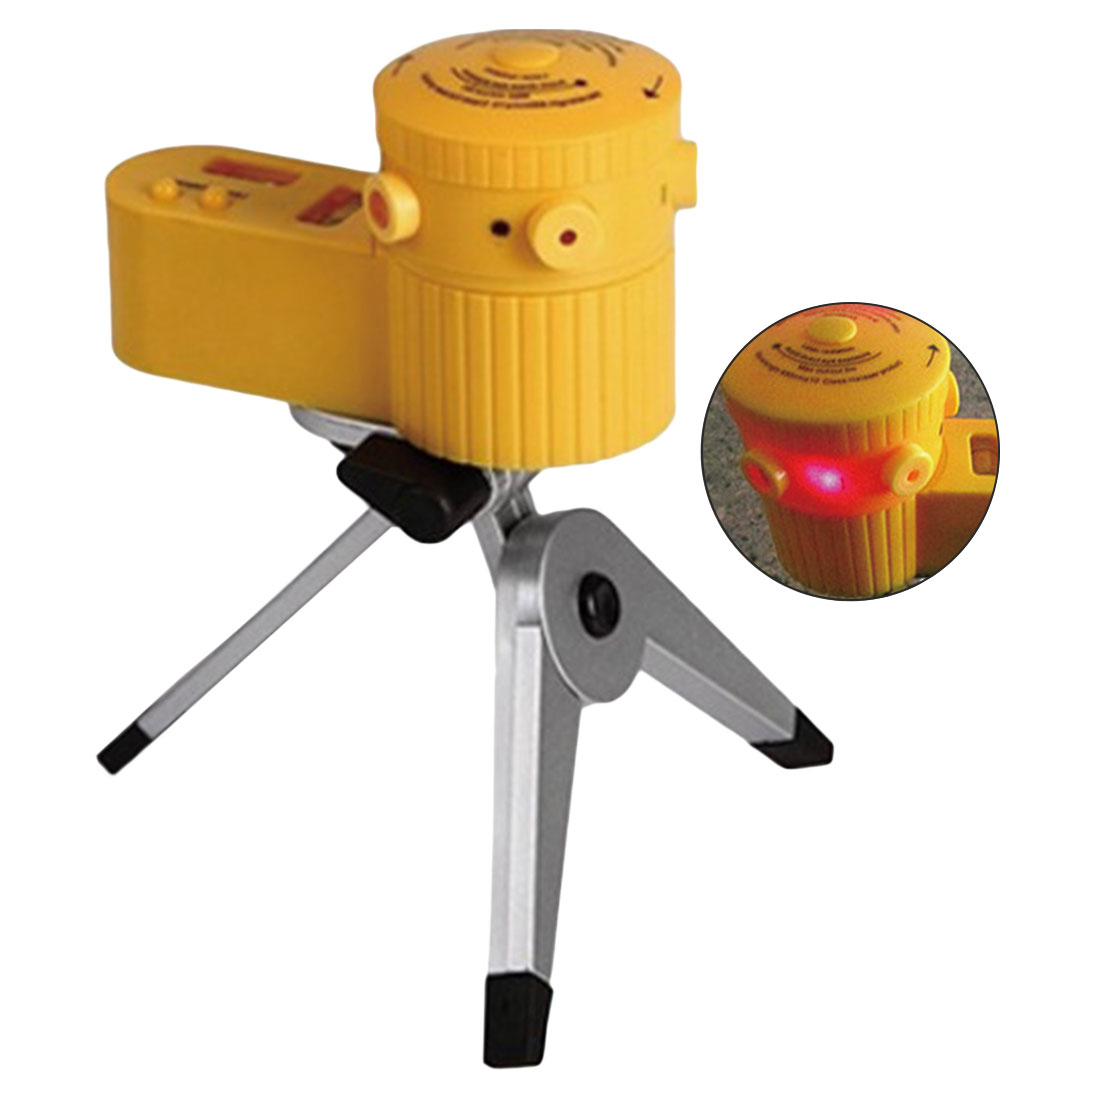 Plastic Multifunction Cross Laser Level Leveler Vertical Horizontal Line Tool With Tripod Equipment Measuring Tools Instrument